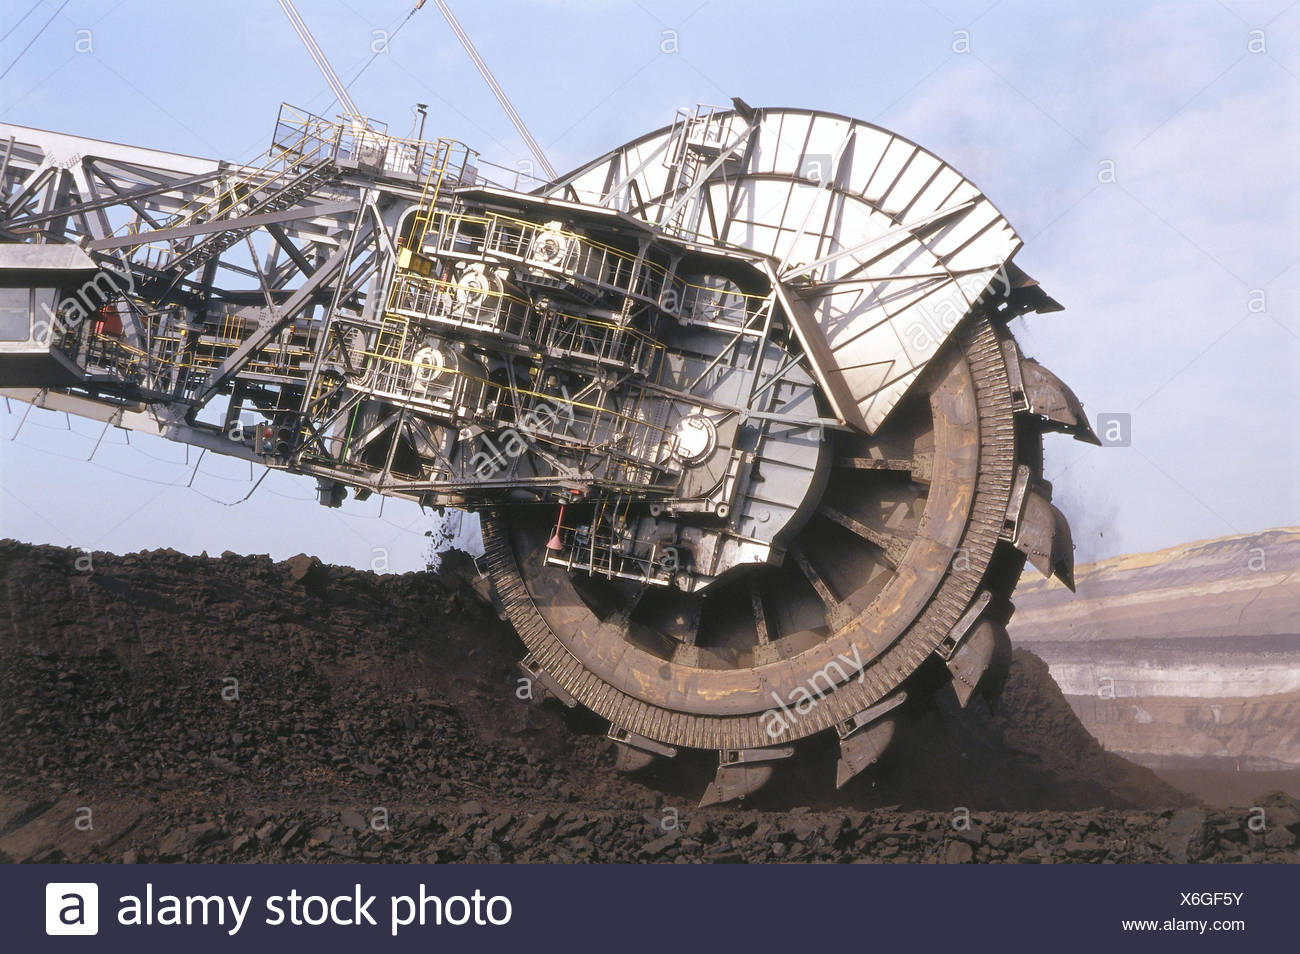 Brown coal opencast mining, bucket wheel excavator, detail, mine, brown coal opus, brown-coal mining, opencast mining, On the surface, coal, waste dump, reduction, brown coal, brown coal reduction, coal reduction, support, overburden, stockpile, excavator Stock Photo